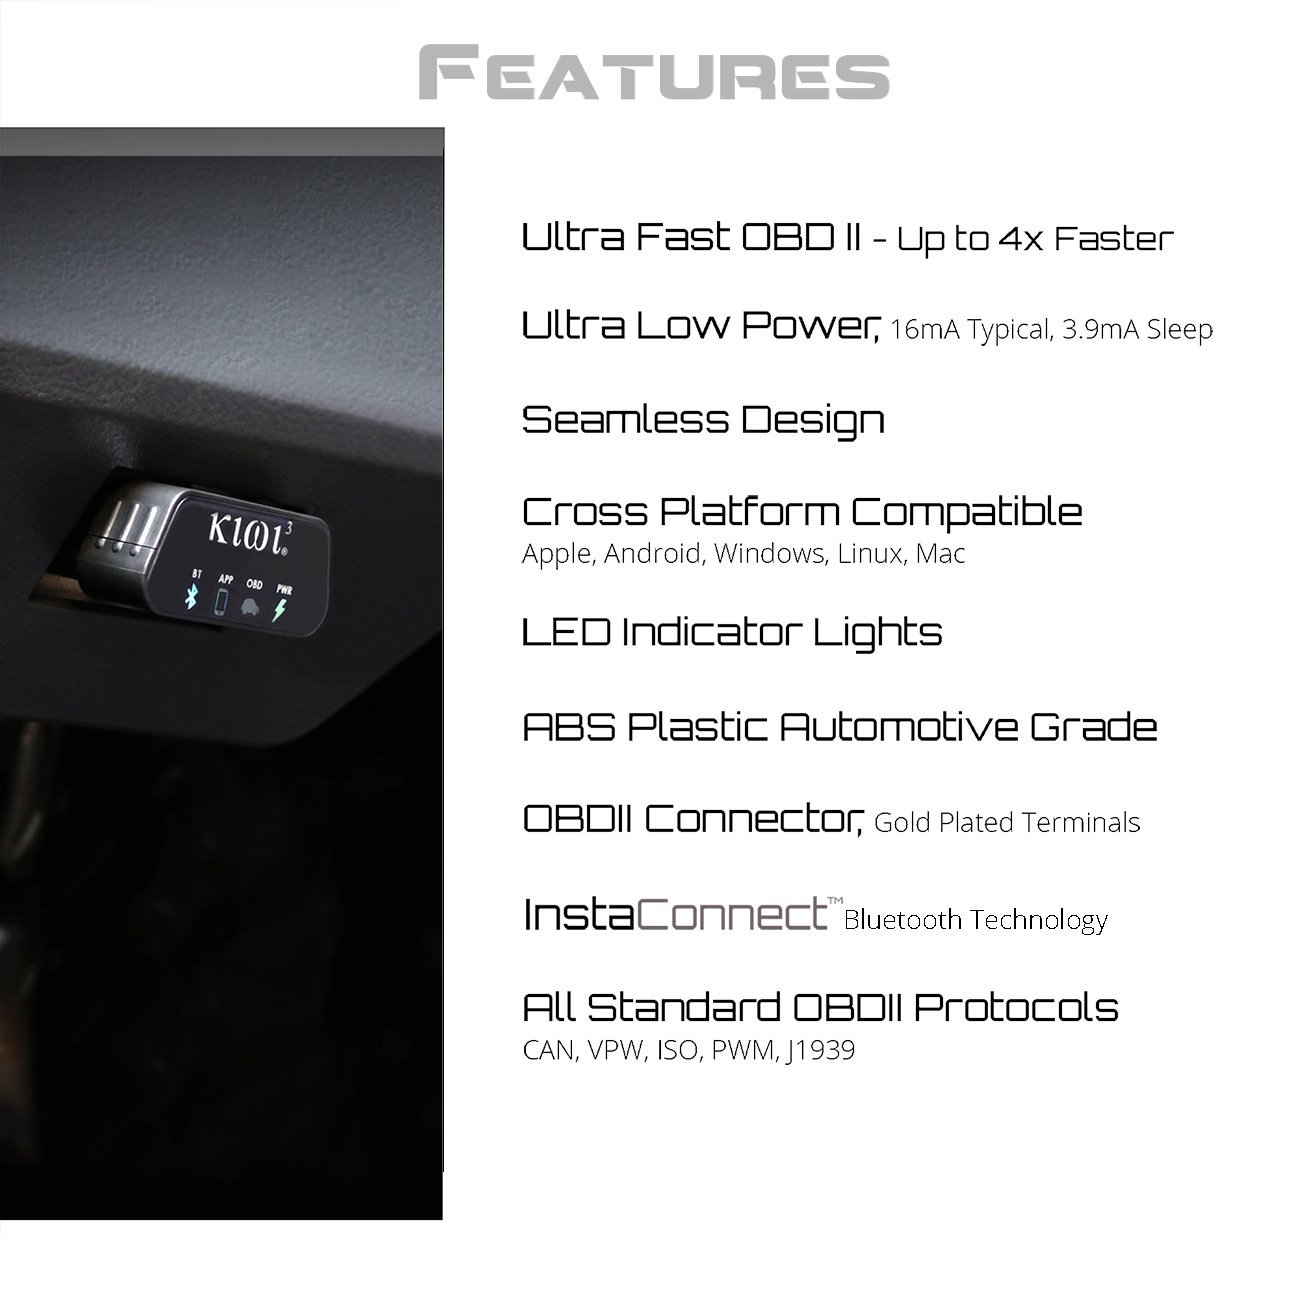 PLX Devices Kiwi 3 Bluetooth OBD2 OBDII Diagnostic Scan Tool for Android, Apple, Windows Mobile by PLX Devices (Image #7)